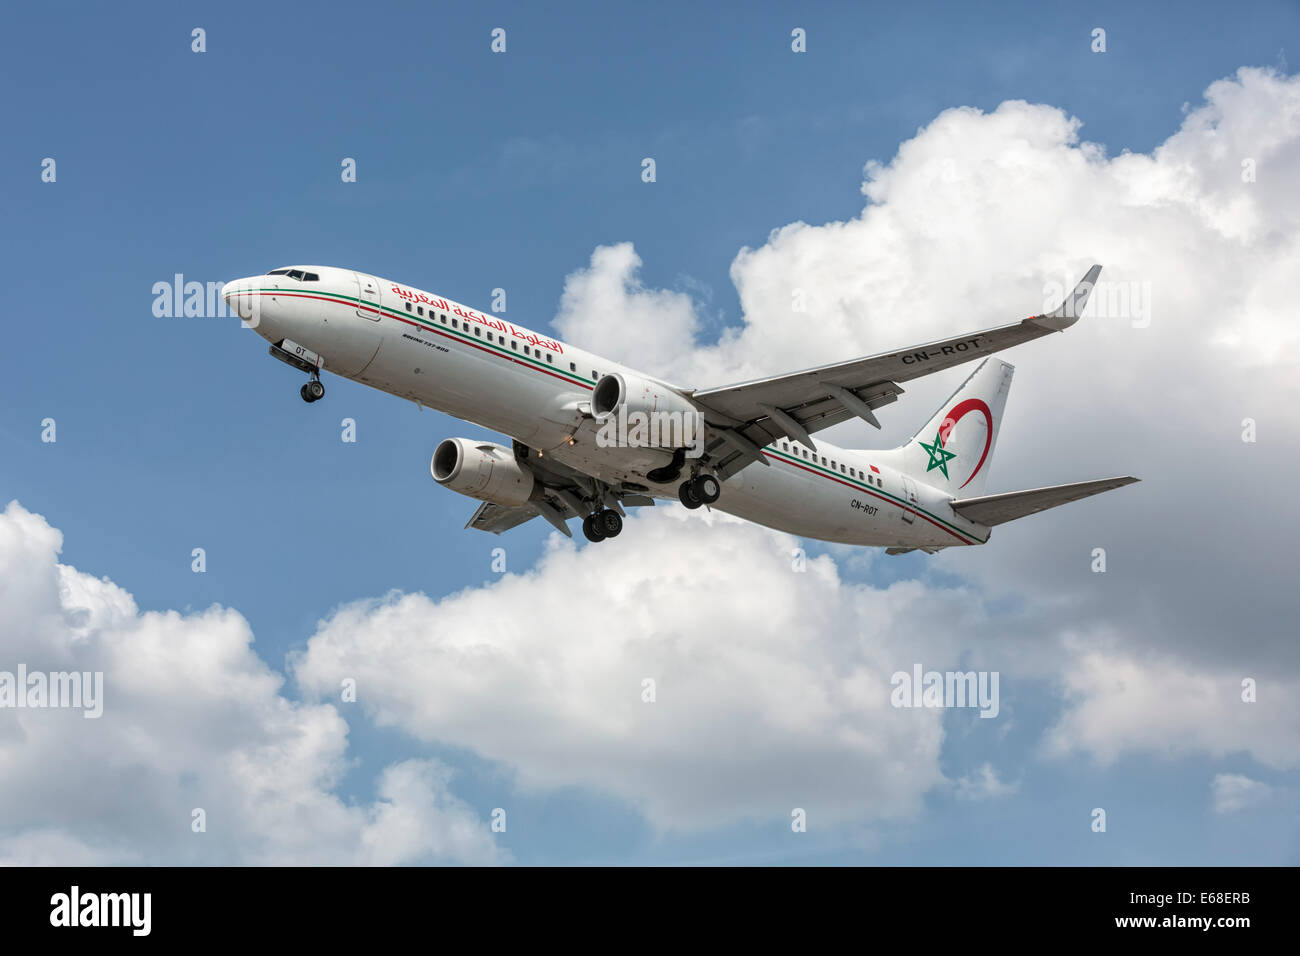 a Boeing 737 of the Morrocan airline Royal Air Maroc - Stock Image